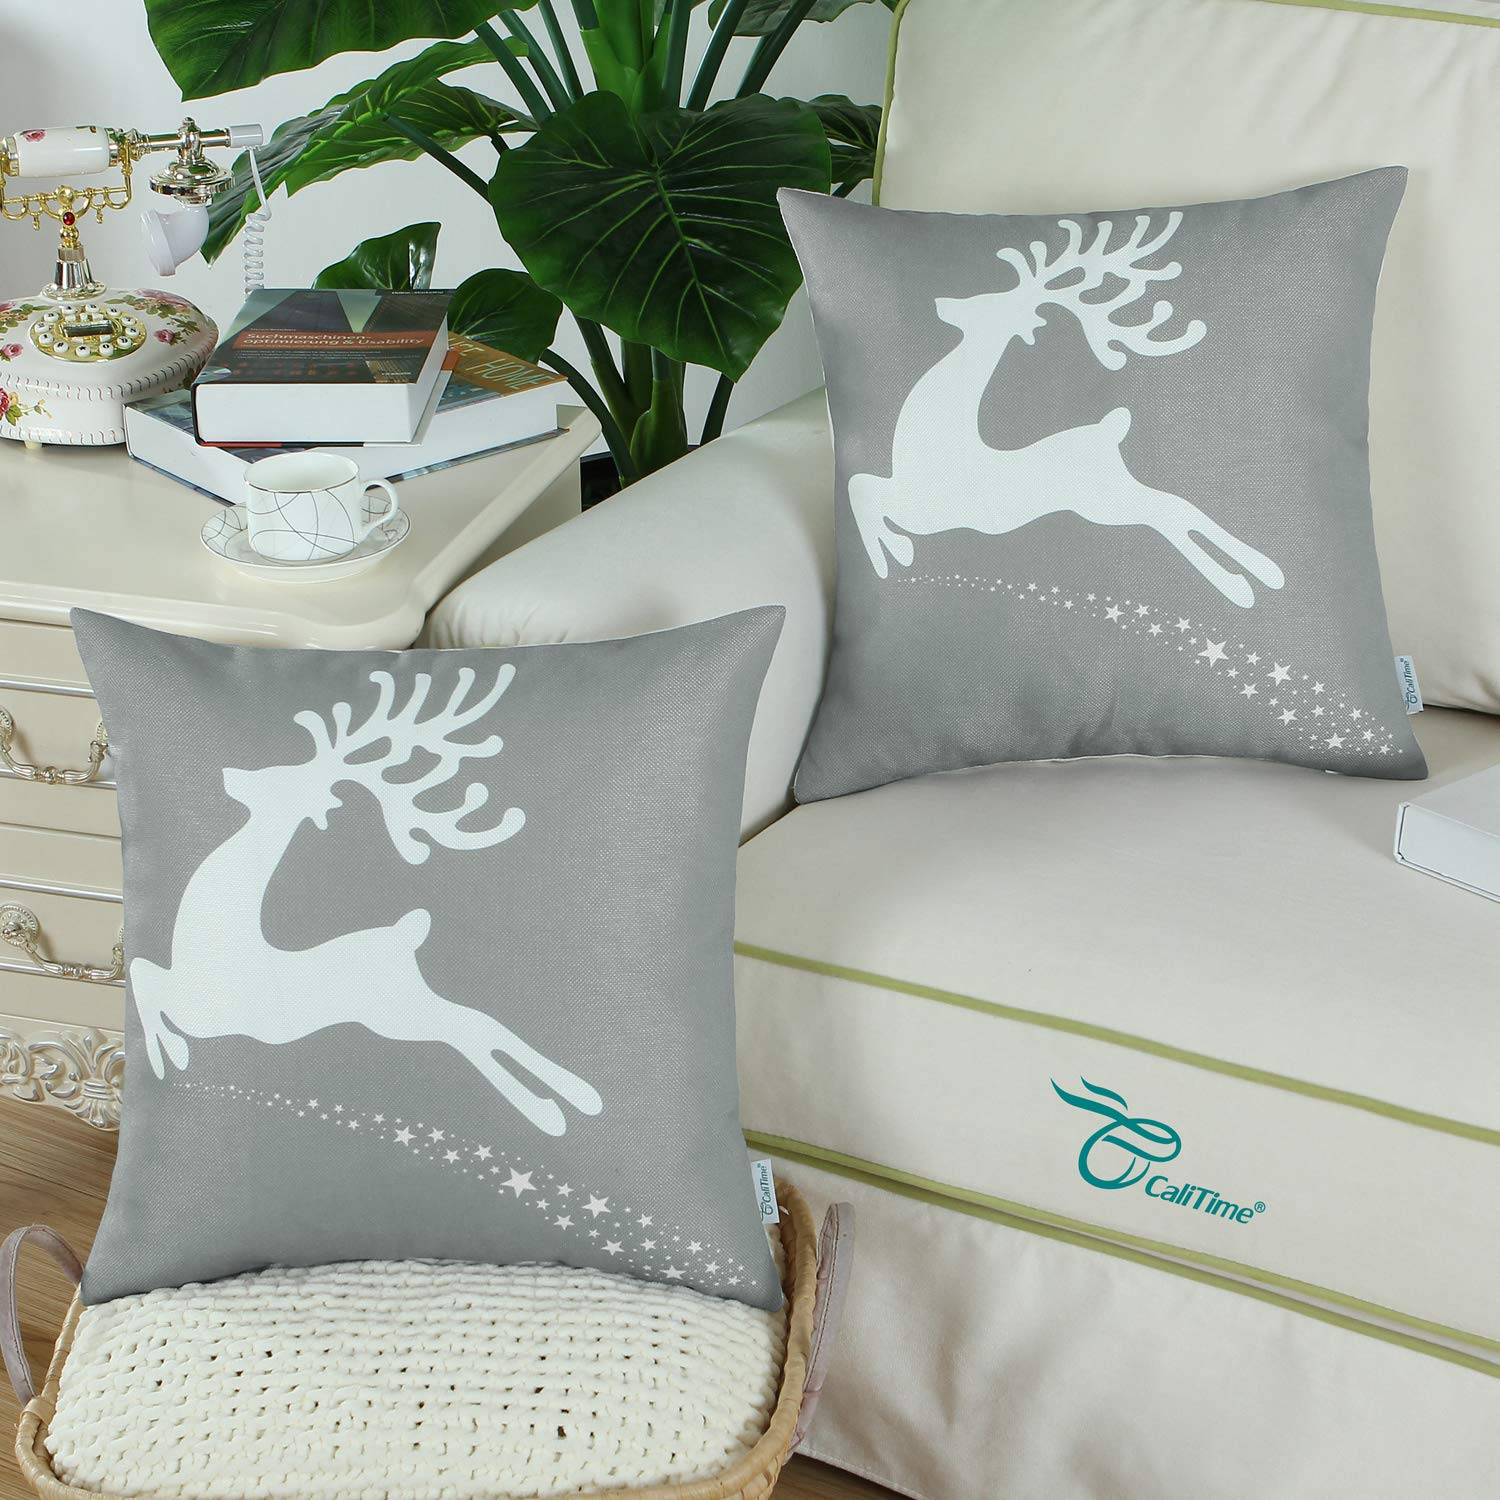 CaliTime Pack of 2 Soft Canvas Throw Pillow Covers Cases for Couch Sofa Home Decoration Christmas Holiday Reindeer with Stars Print